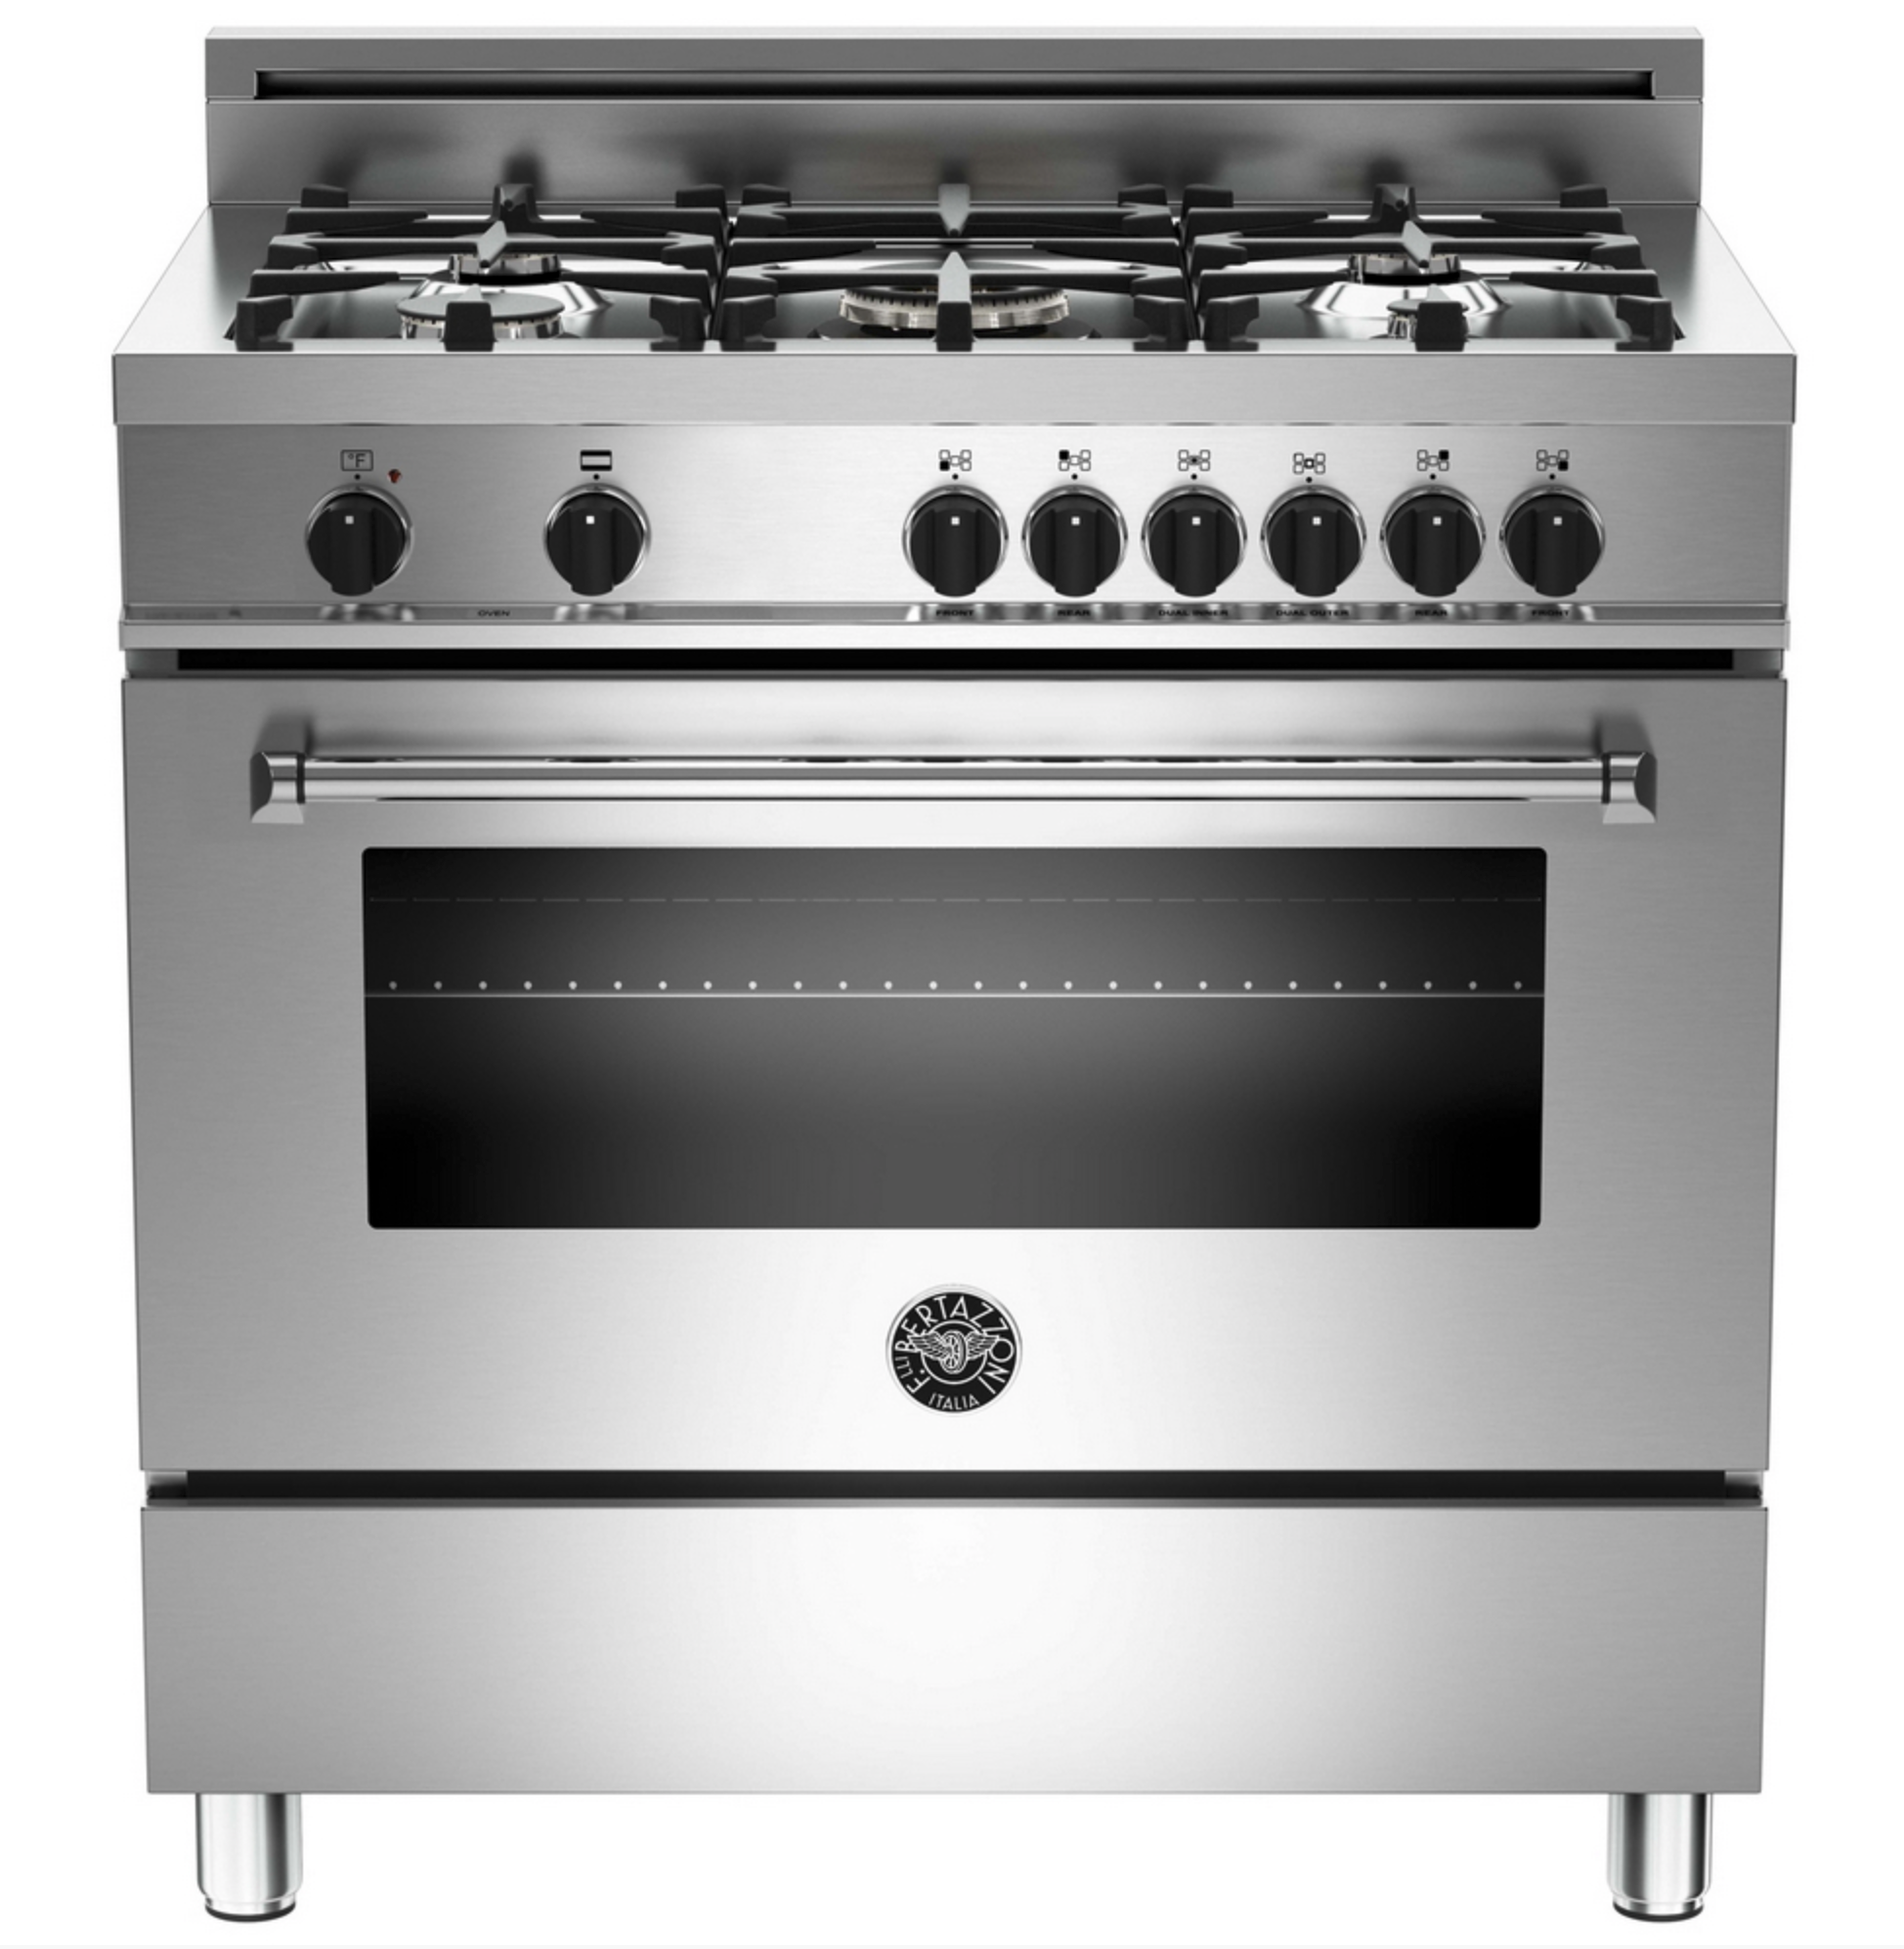 2. Stove - Bertazzoni 36 5-Burner, Gas Oven from Albert Lee